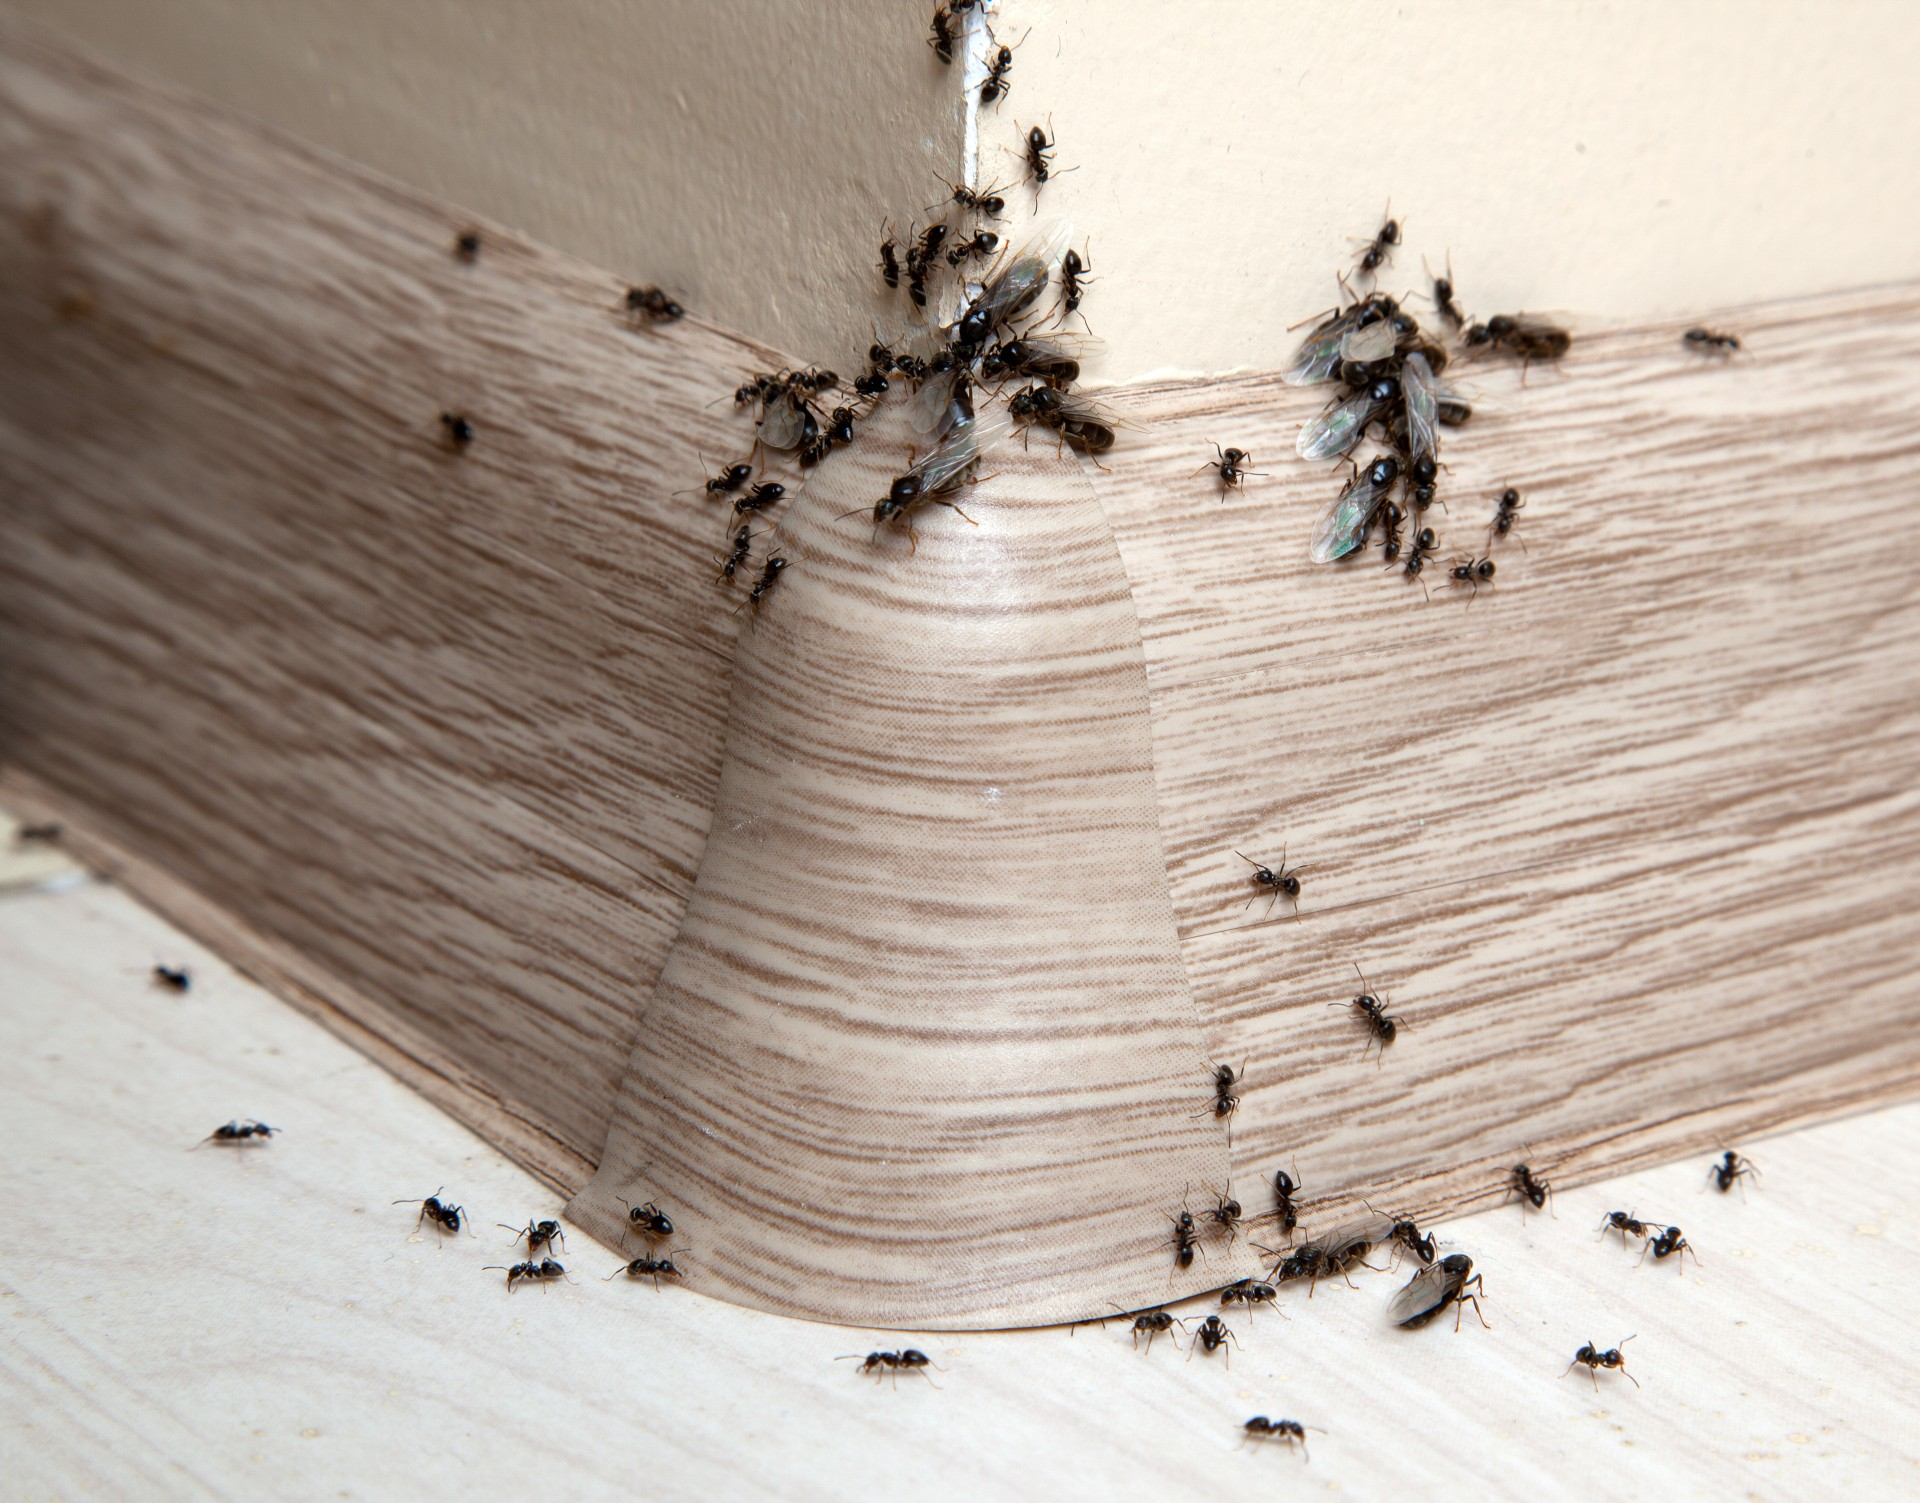 Ant Infestation, Pest Control in Cheshunt, Waltham Cross, EN8. Call Now 020 8166 9746